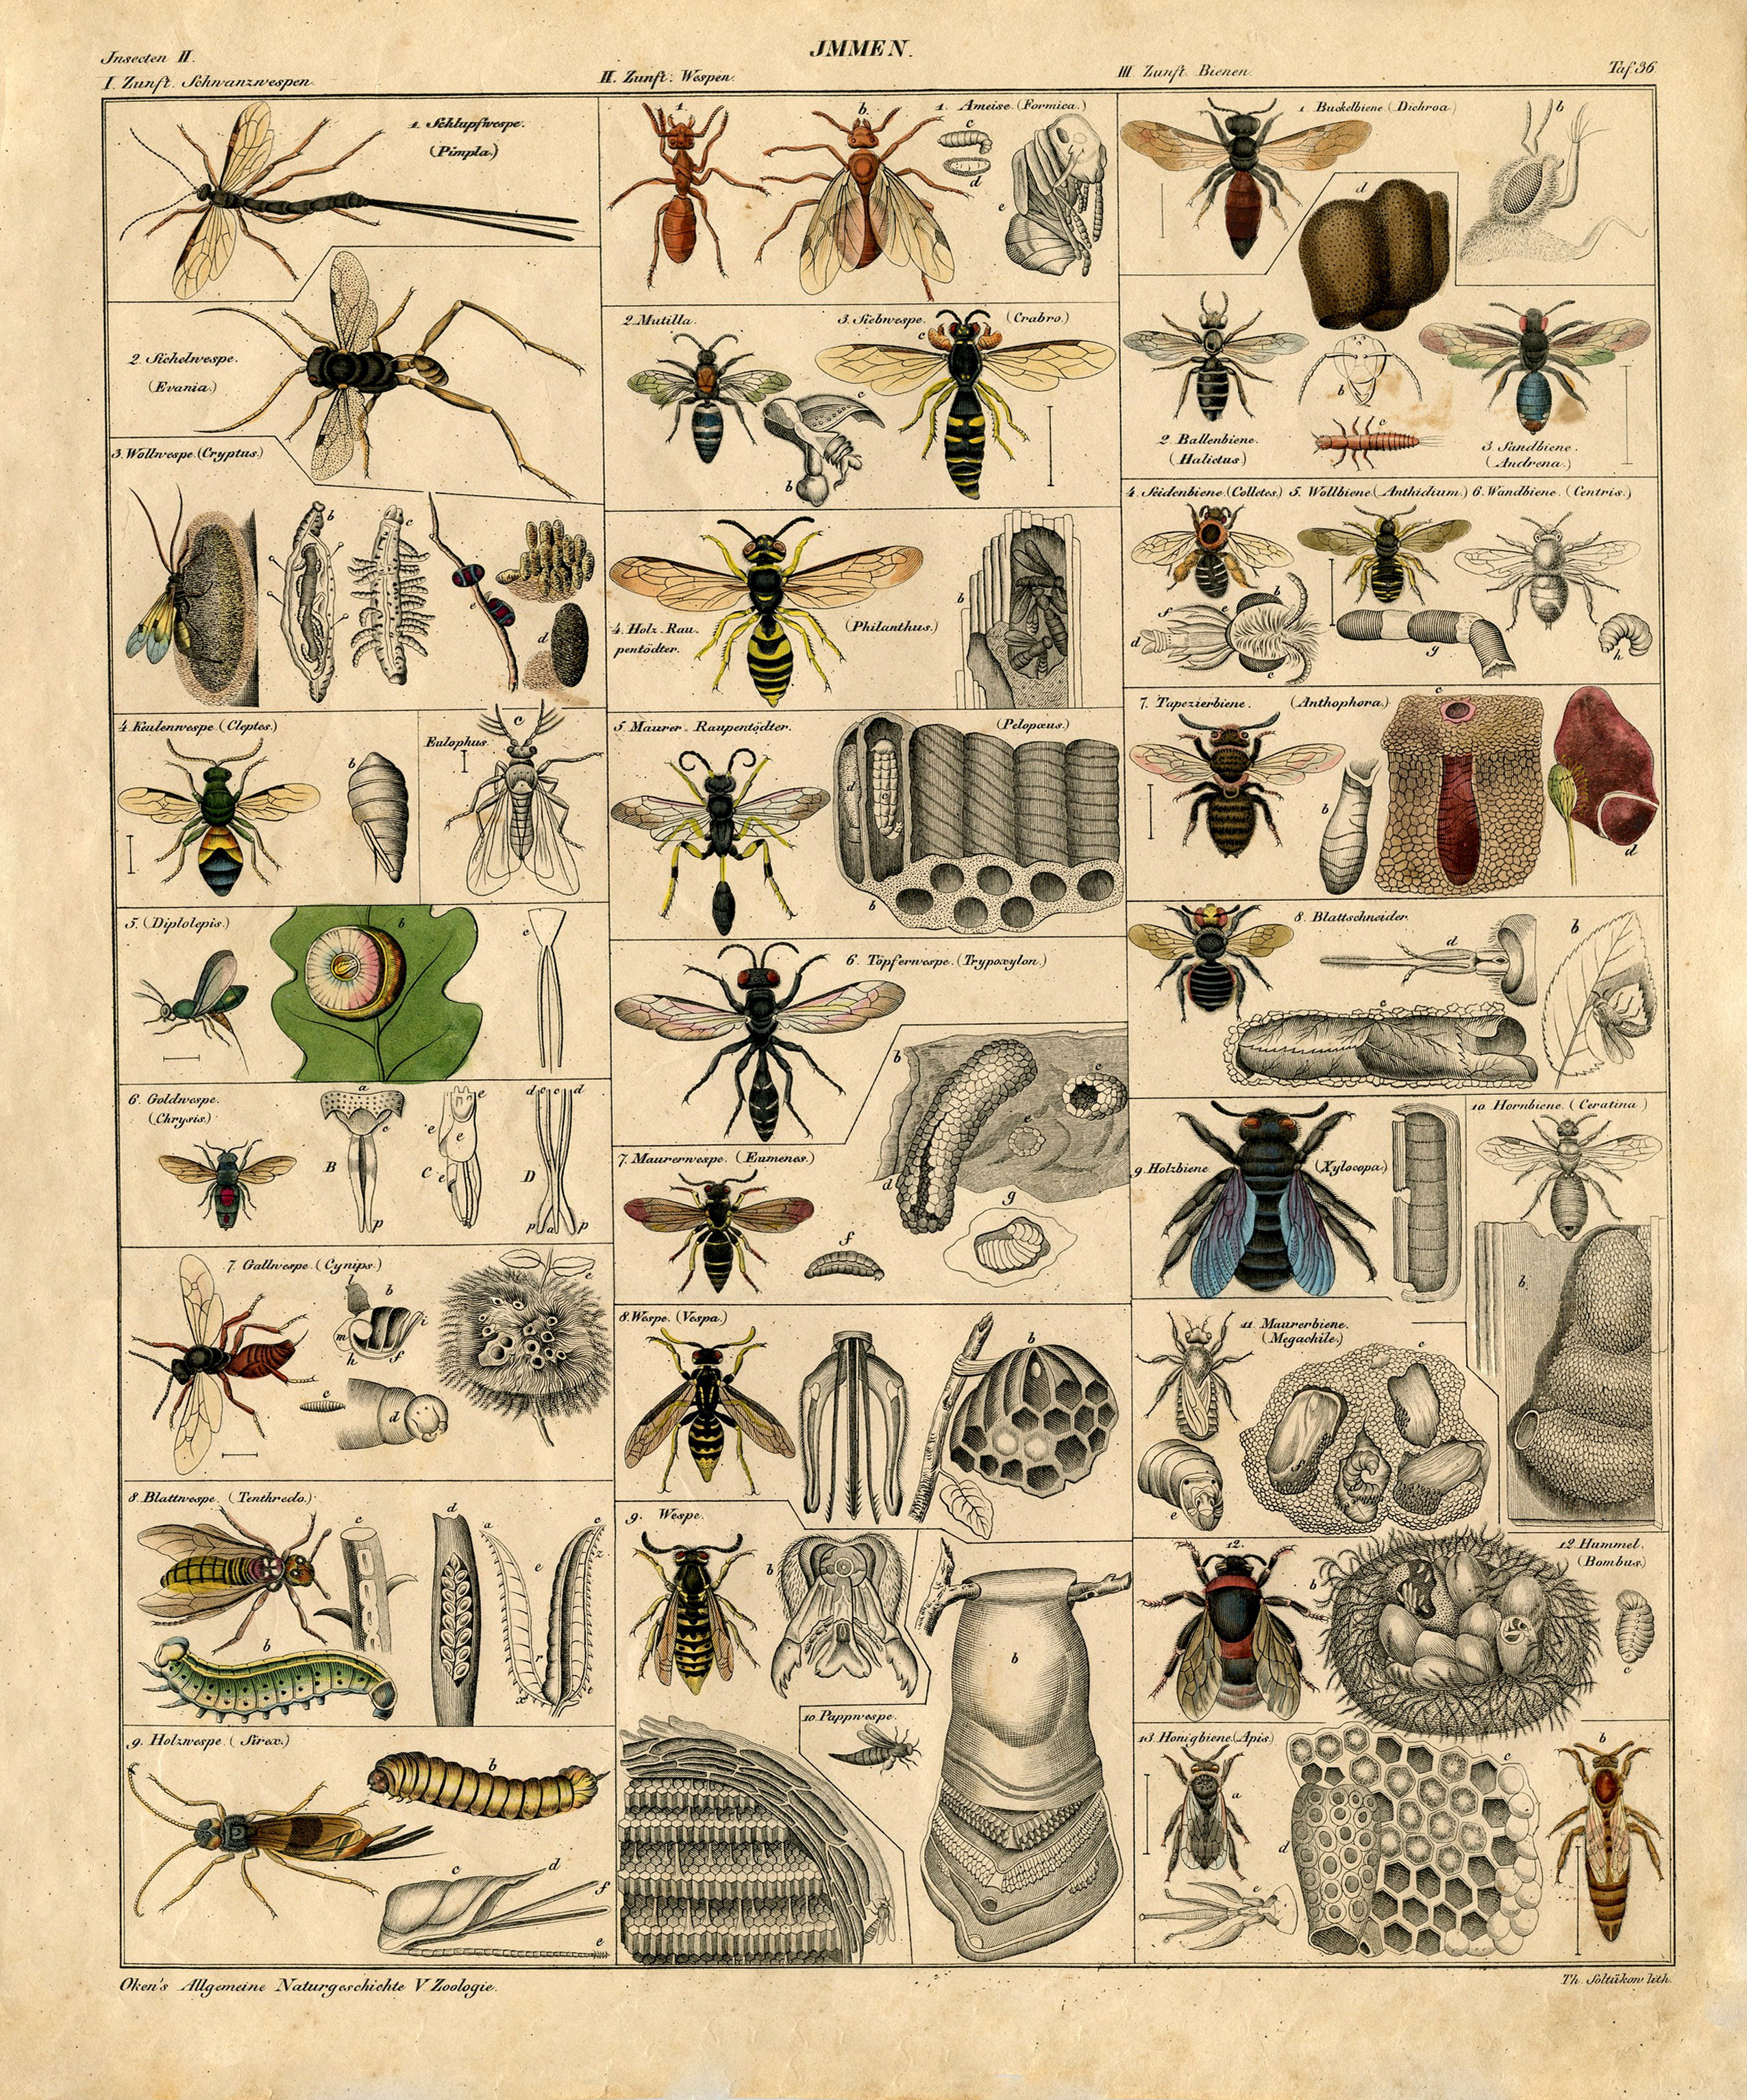 Awesome Vintage Anatomy Posters Vignette Human Anatomy Images